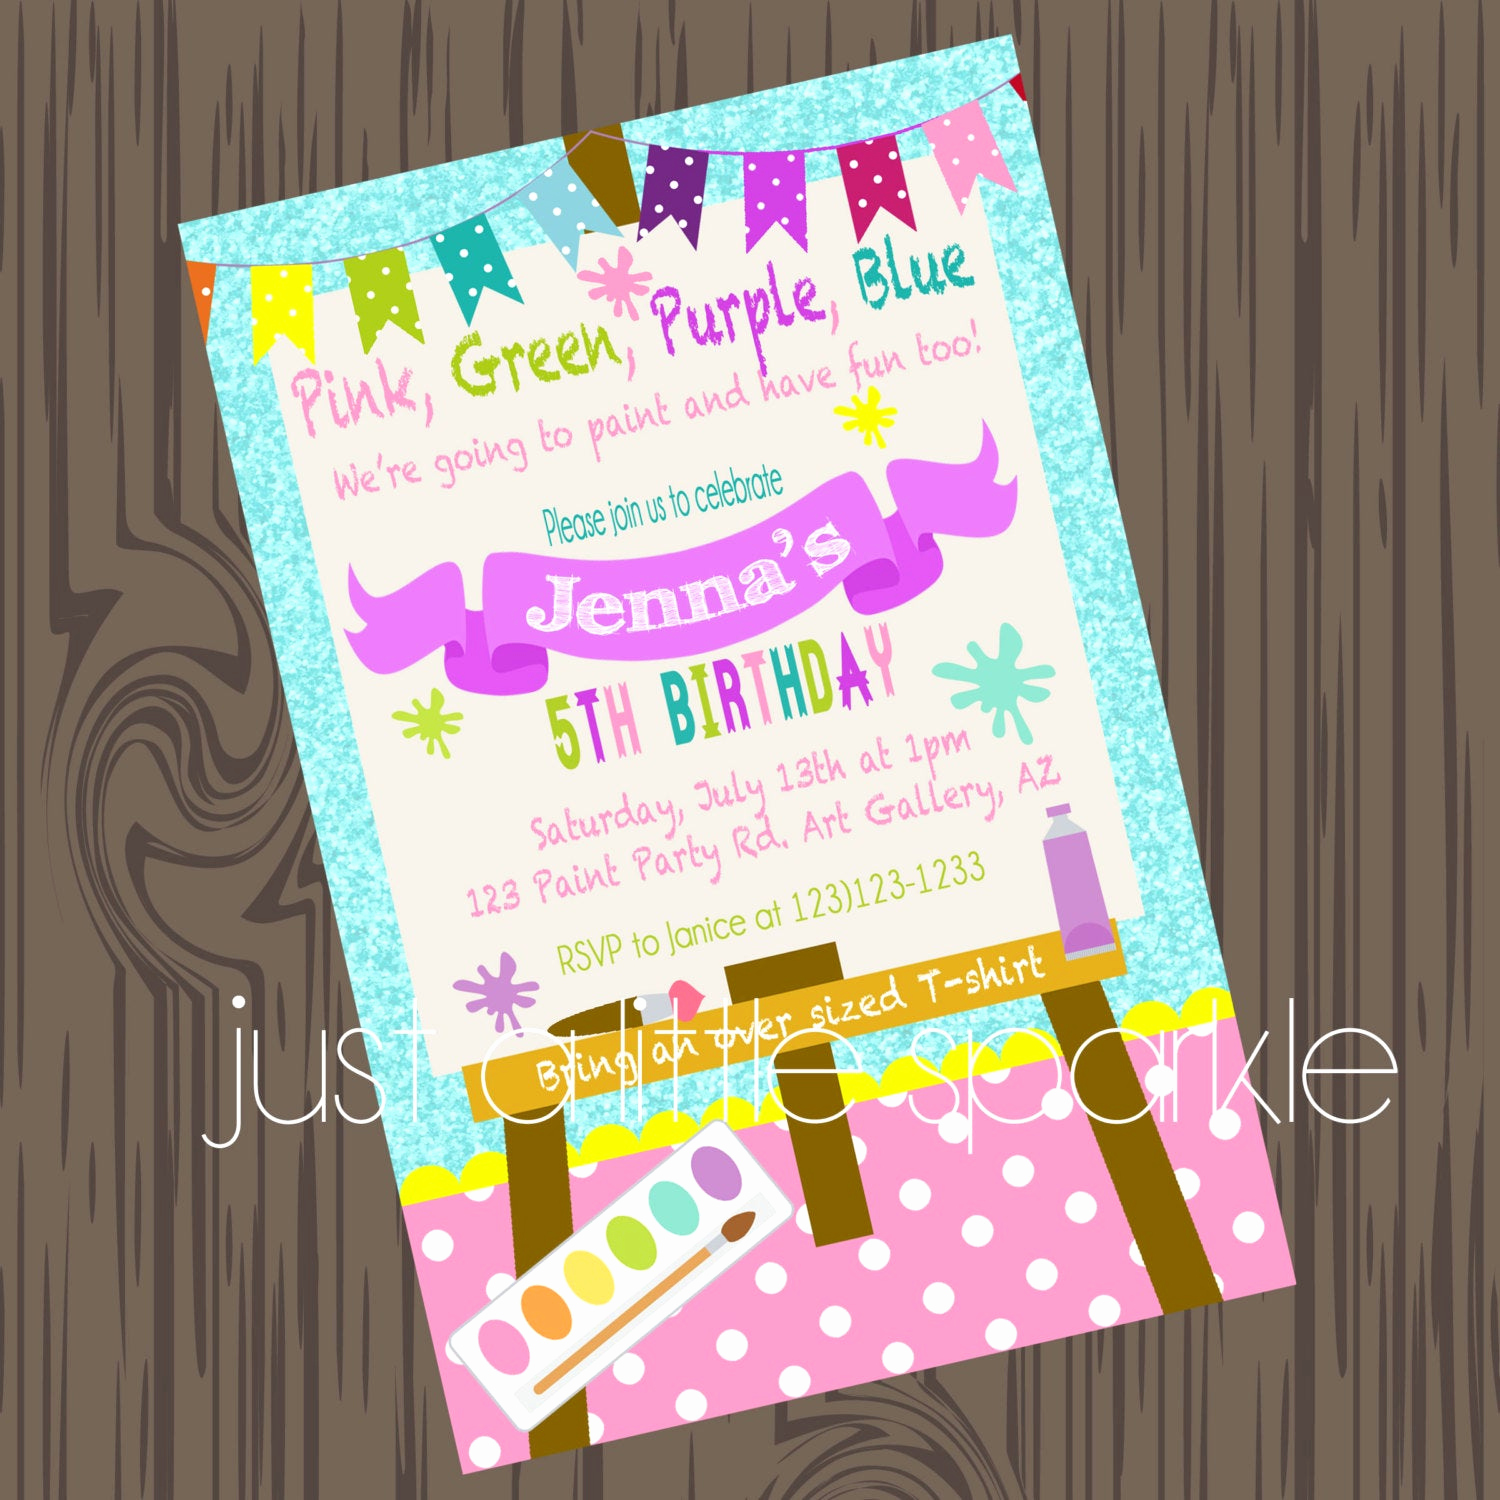 Paint Party Invitation Wording Beautiful Paint Party Invitation Art Supply Party Invitation Paint